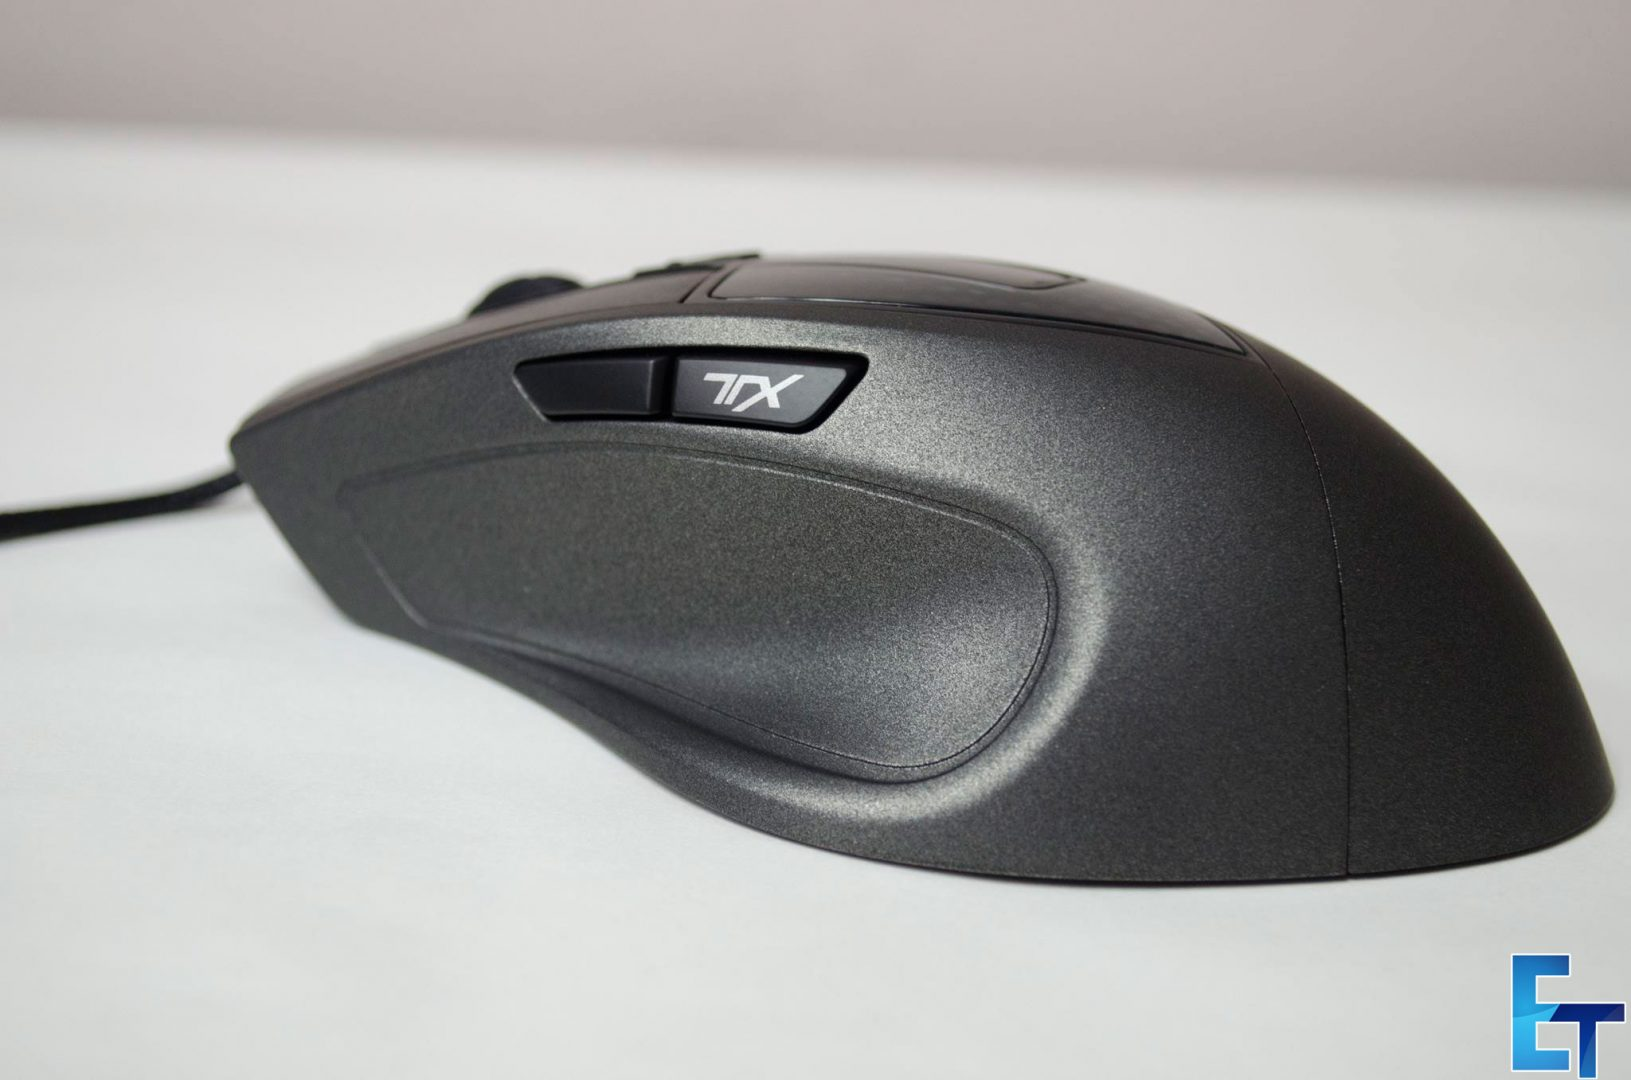 Cooler-Master-Sentinel-III-Ergonomic-Gaming-Mouse-Review_8